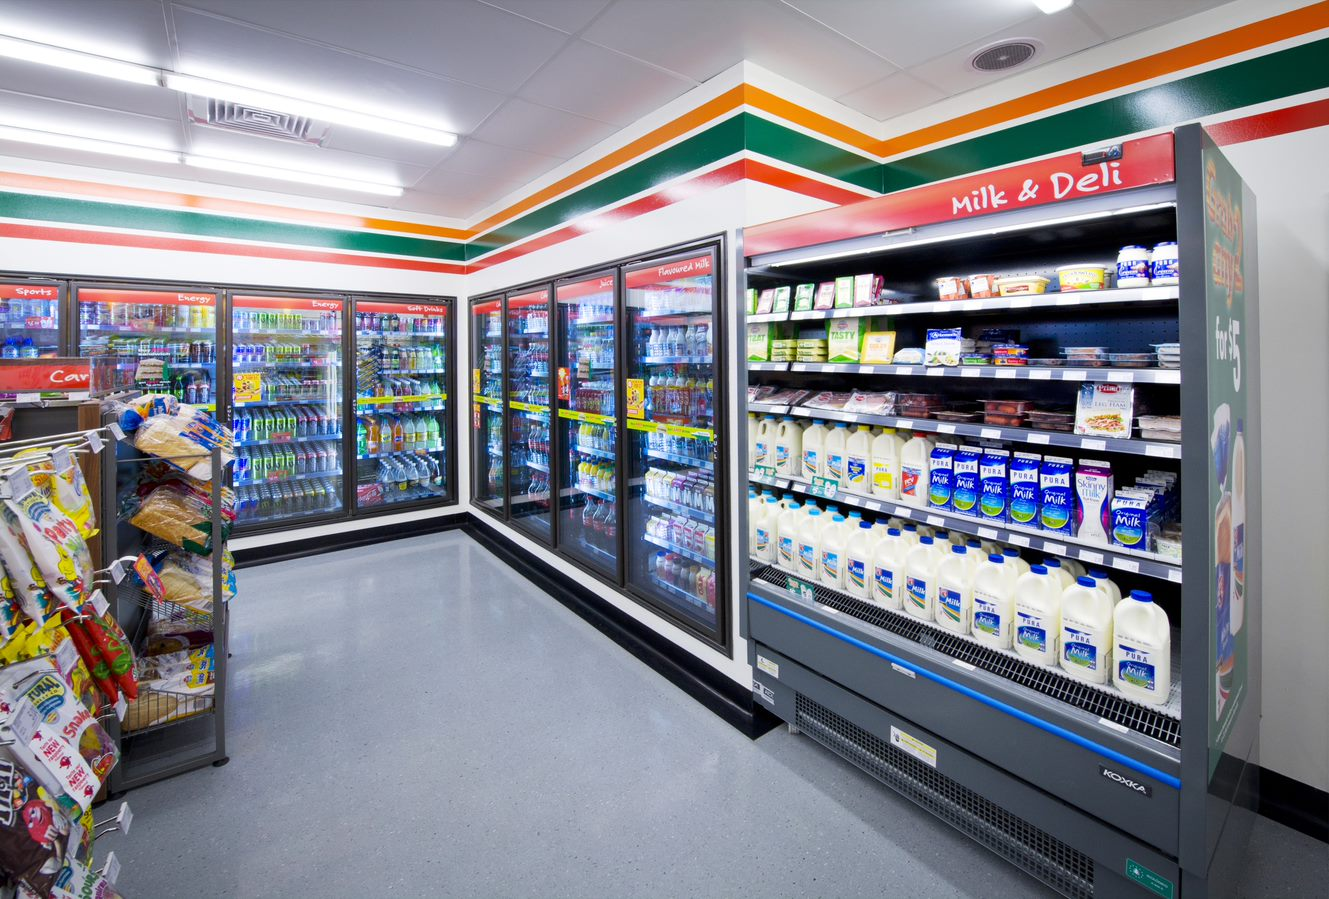 7-Eleven Fuel and Convenience Store  - Toukley